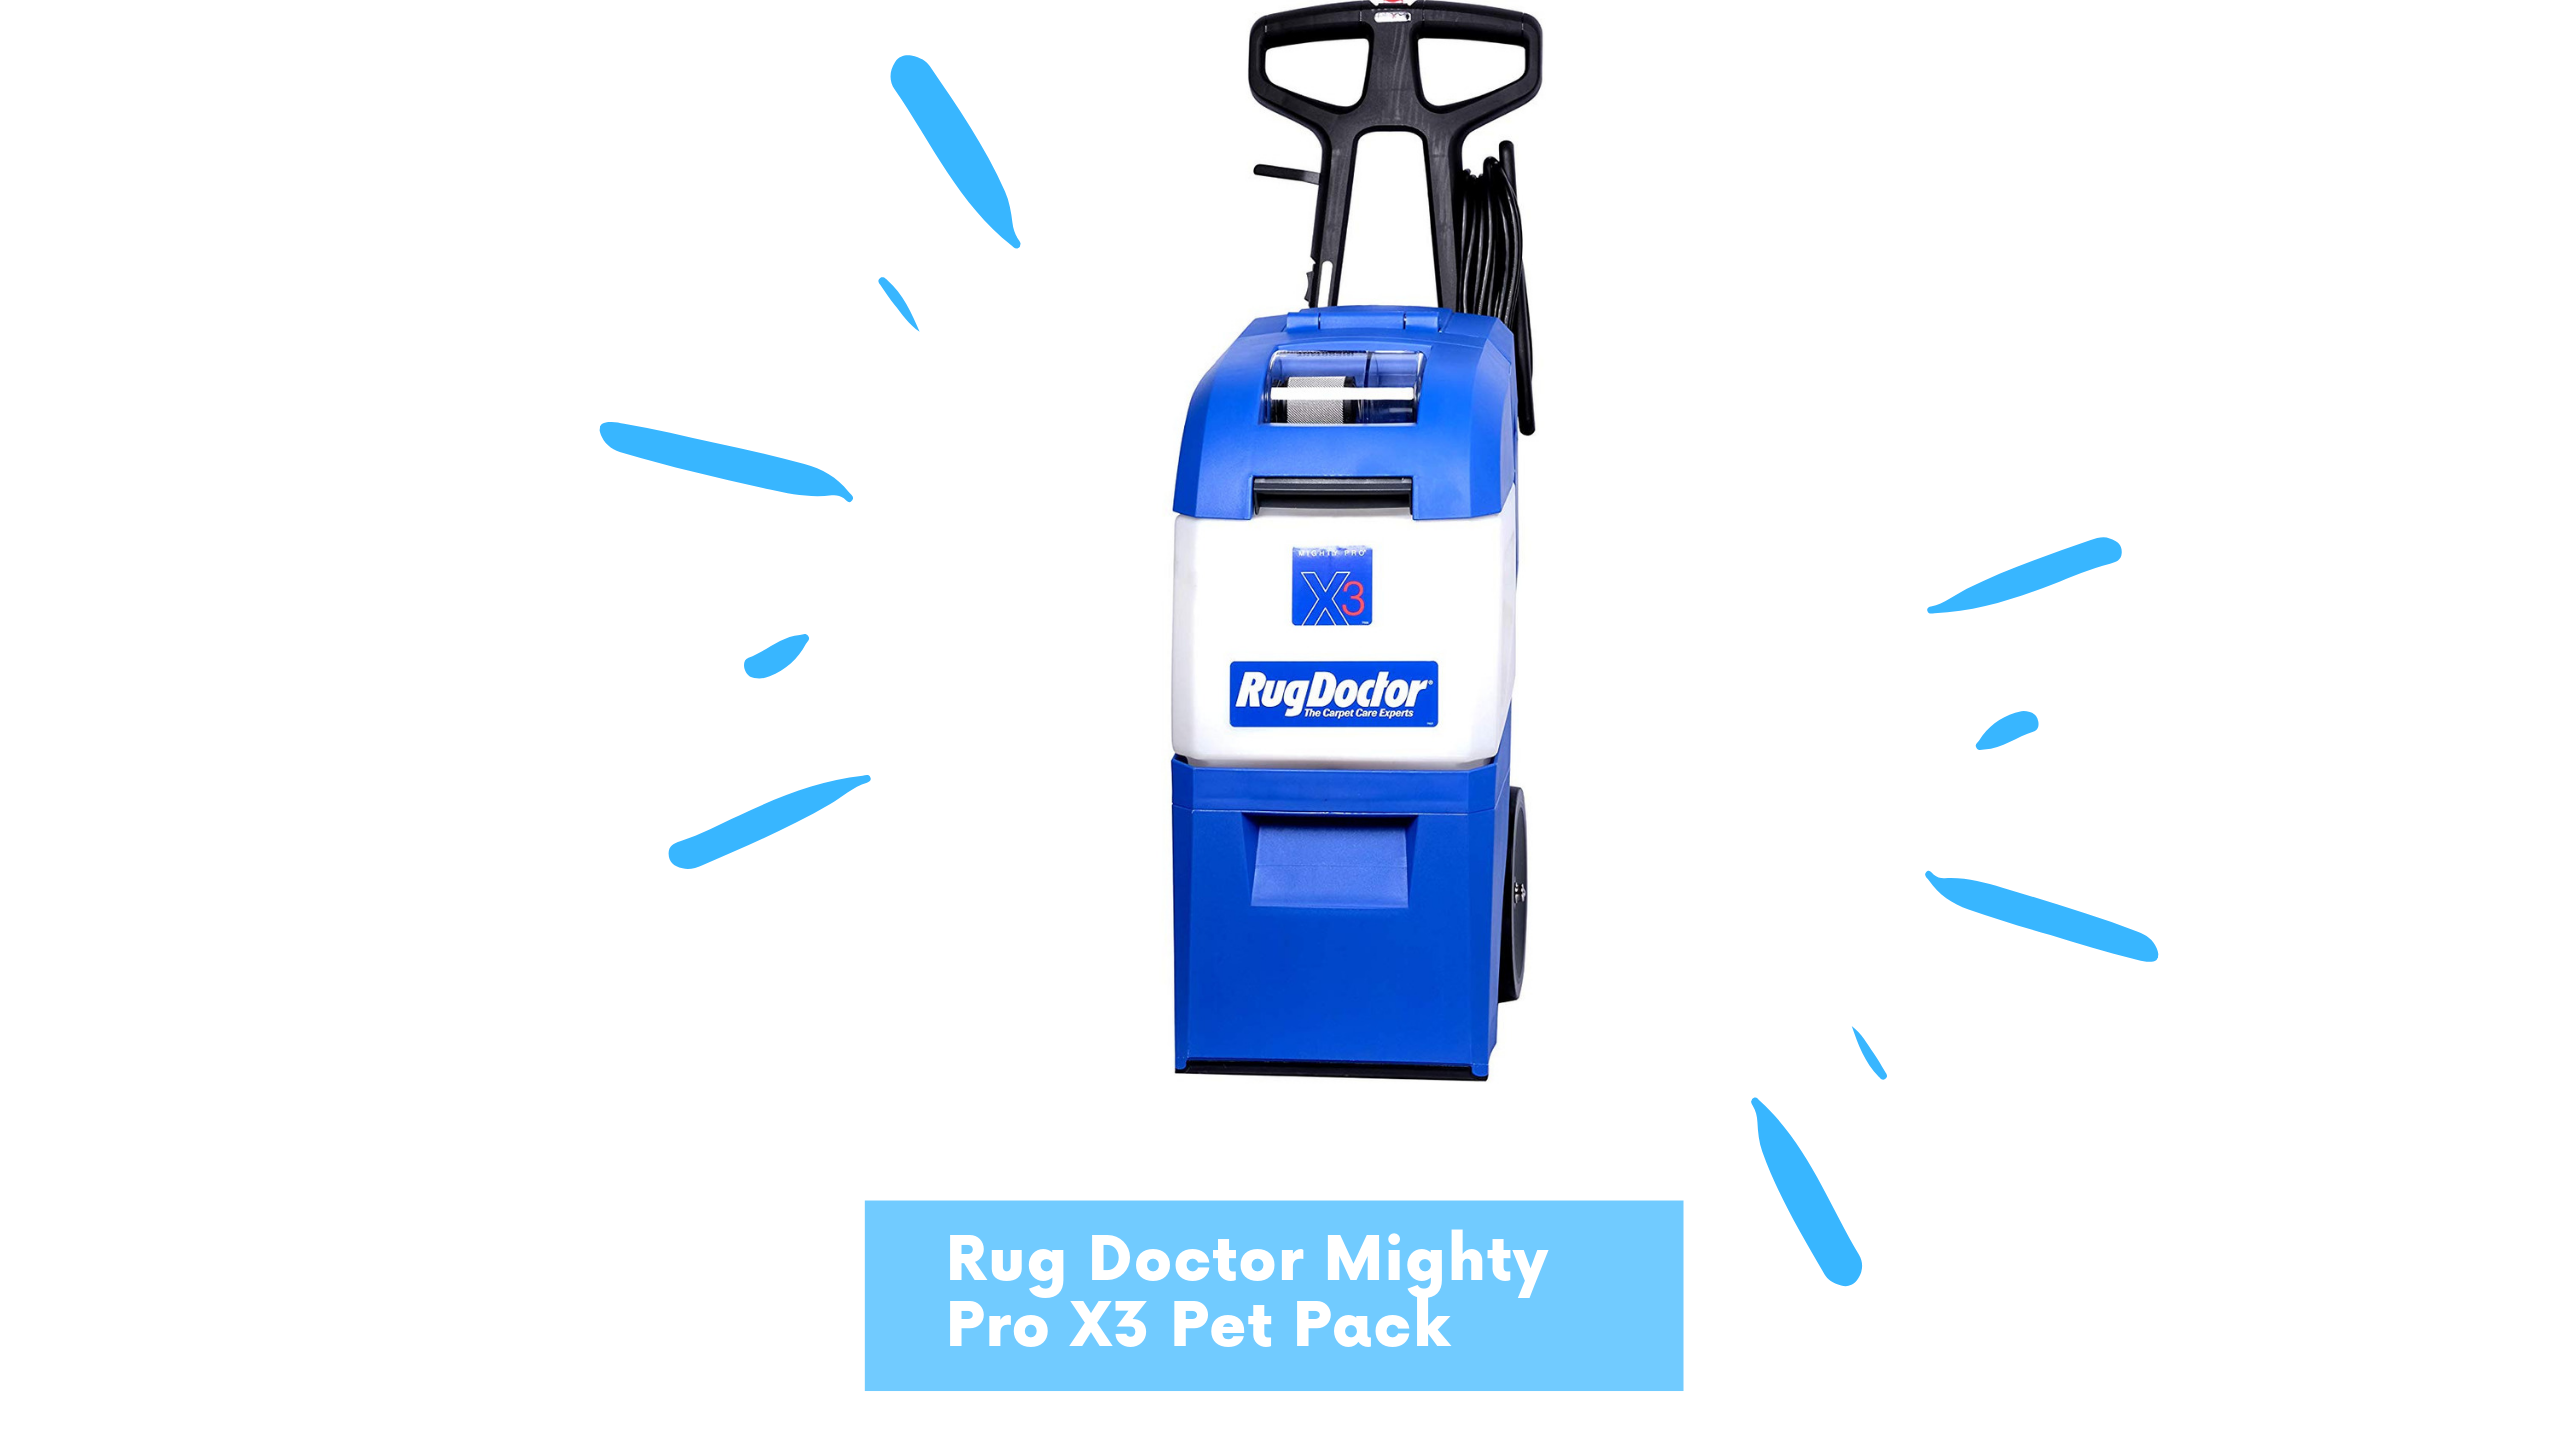 Rug Doctor Mighty Pro X3 Pet Pack Review – 2021 UPDATED